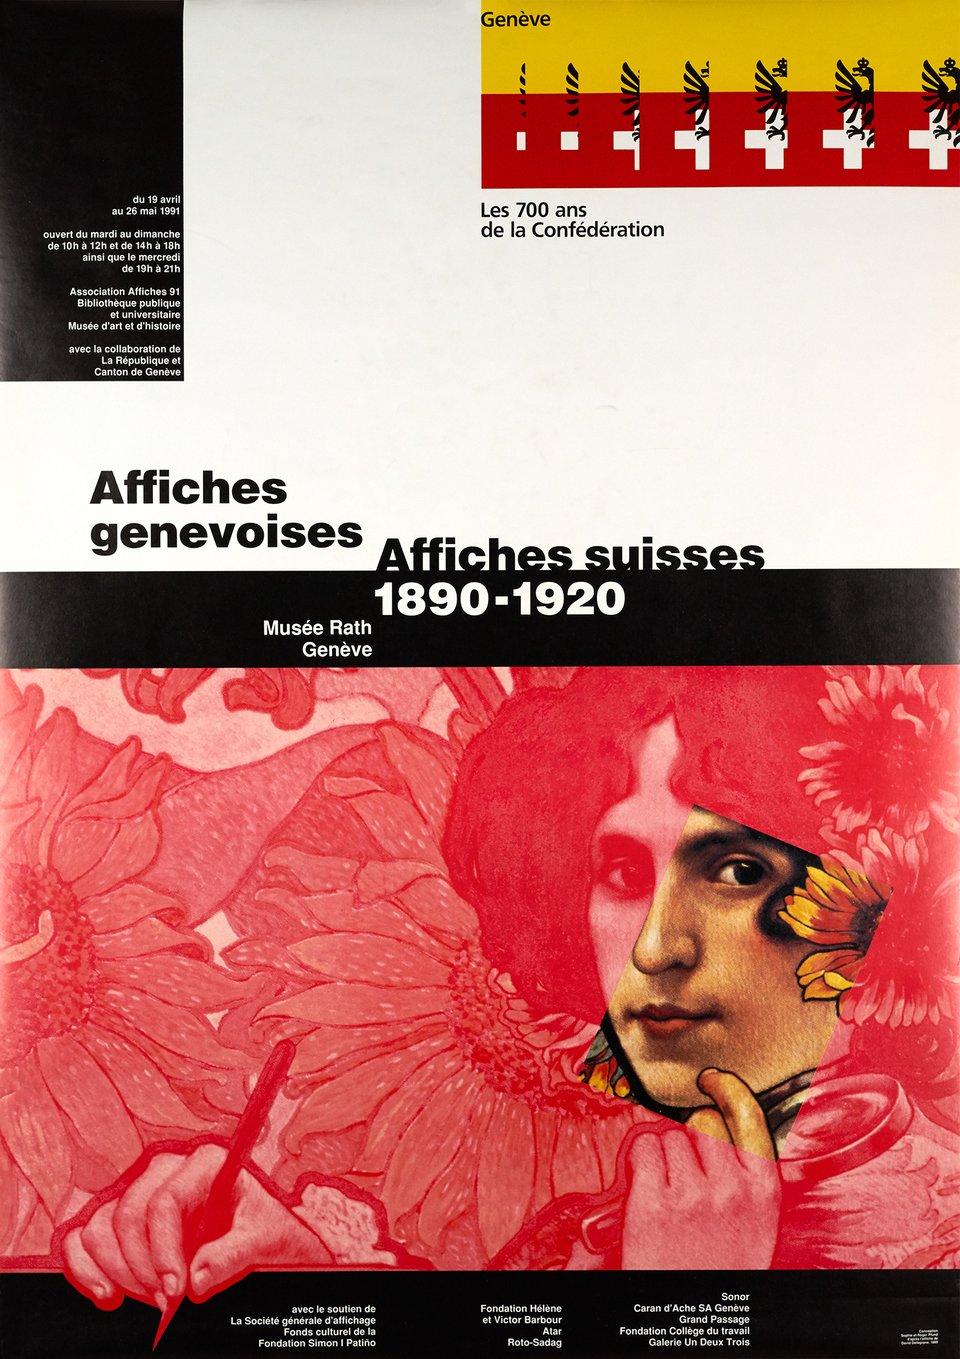 Affiches Genevoises, Affiches suisses 1890-1920 – Affiche ancienne – David DELLEPIANE, Roger & Sophie PFUND – 1991